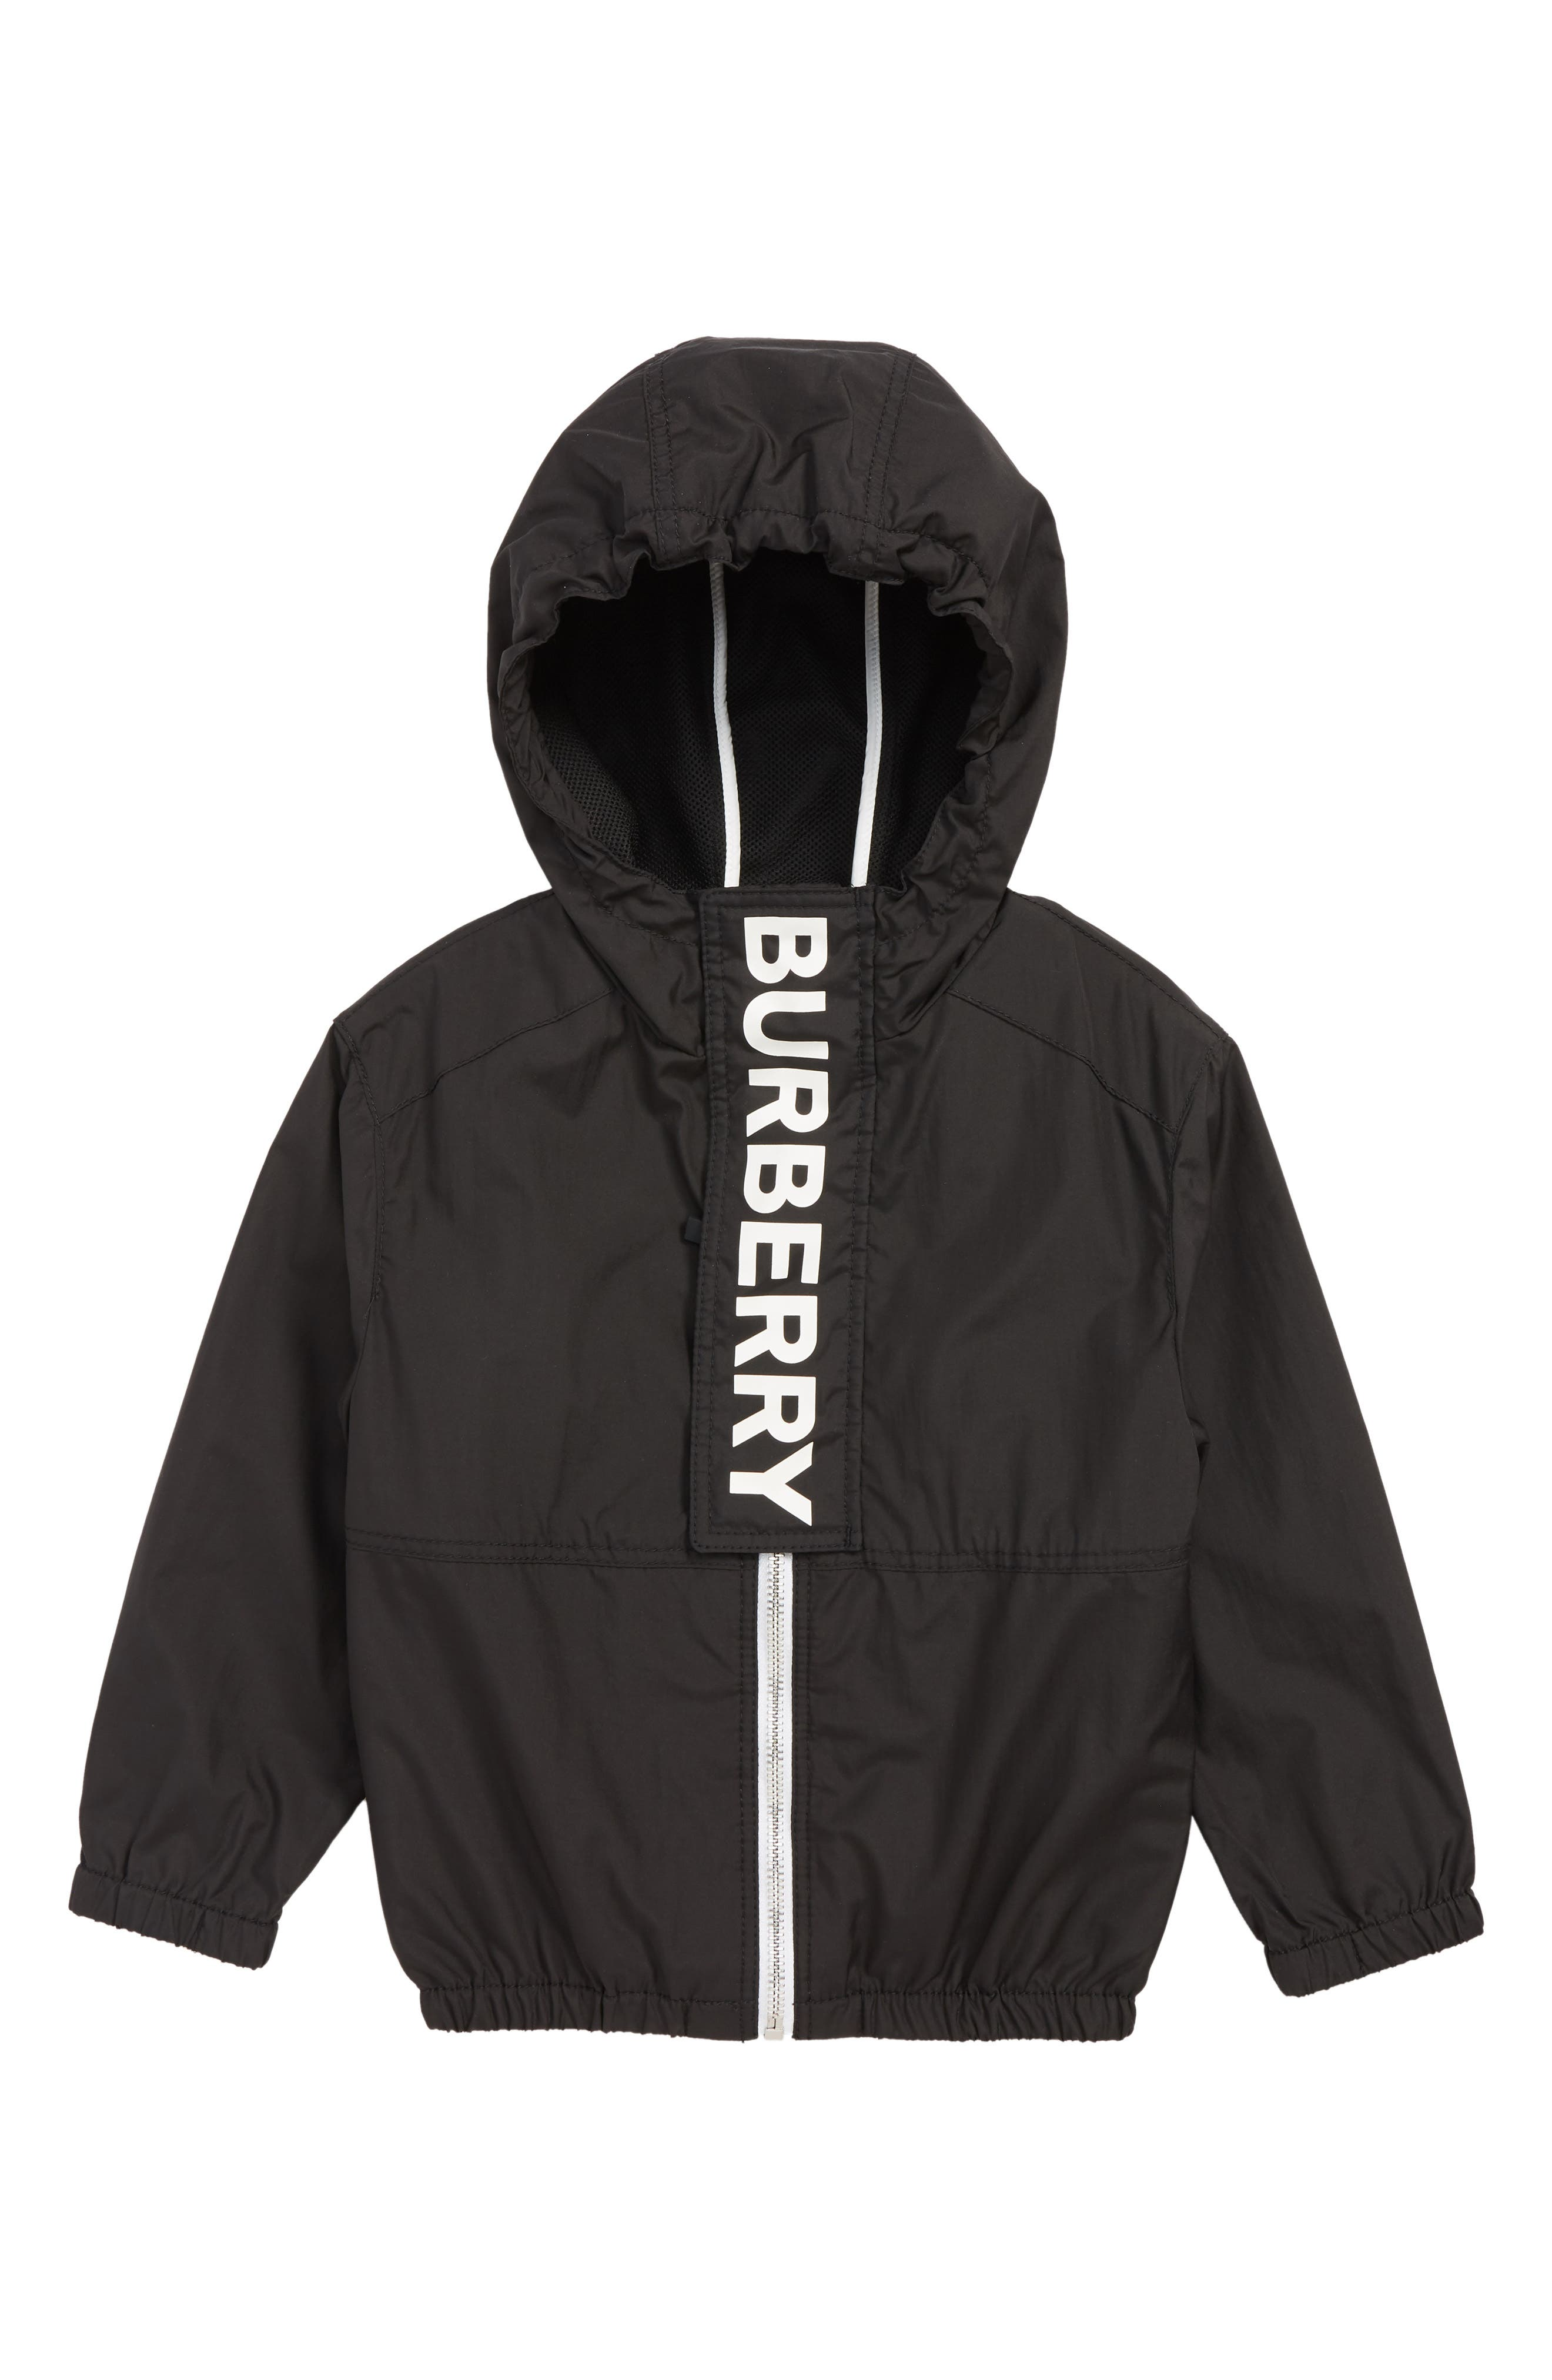 BURBERRY, Austin Logo Hooded Windbreaker, Main thumbnail 1, color, BLACK